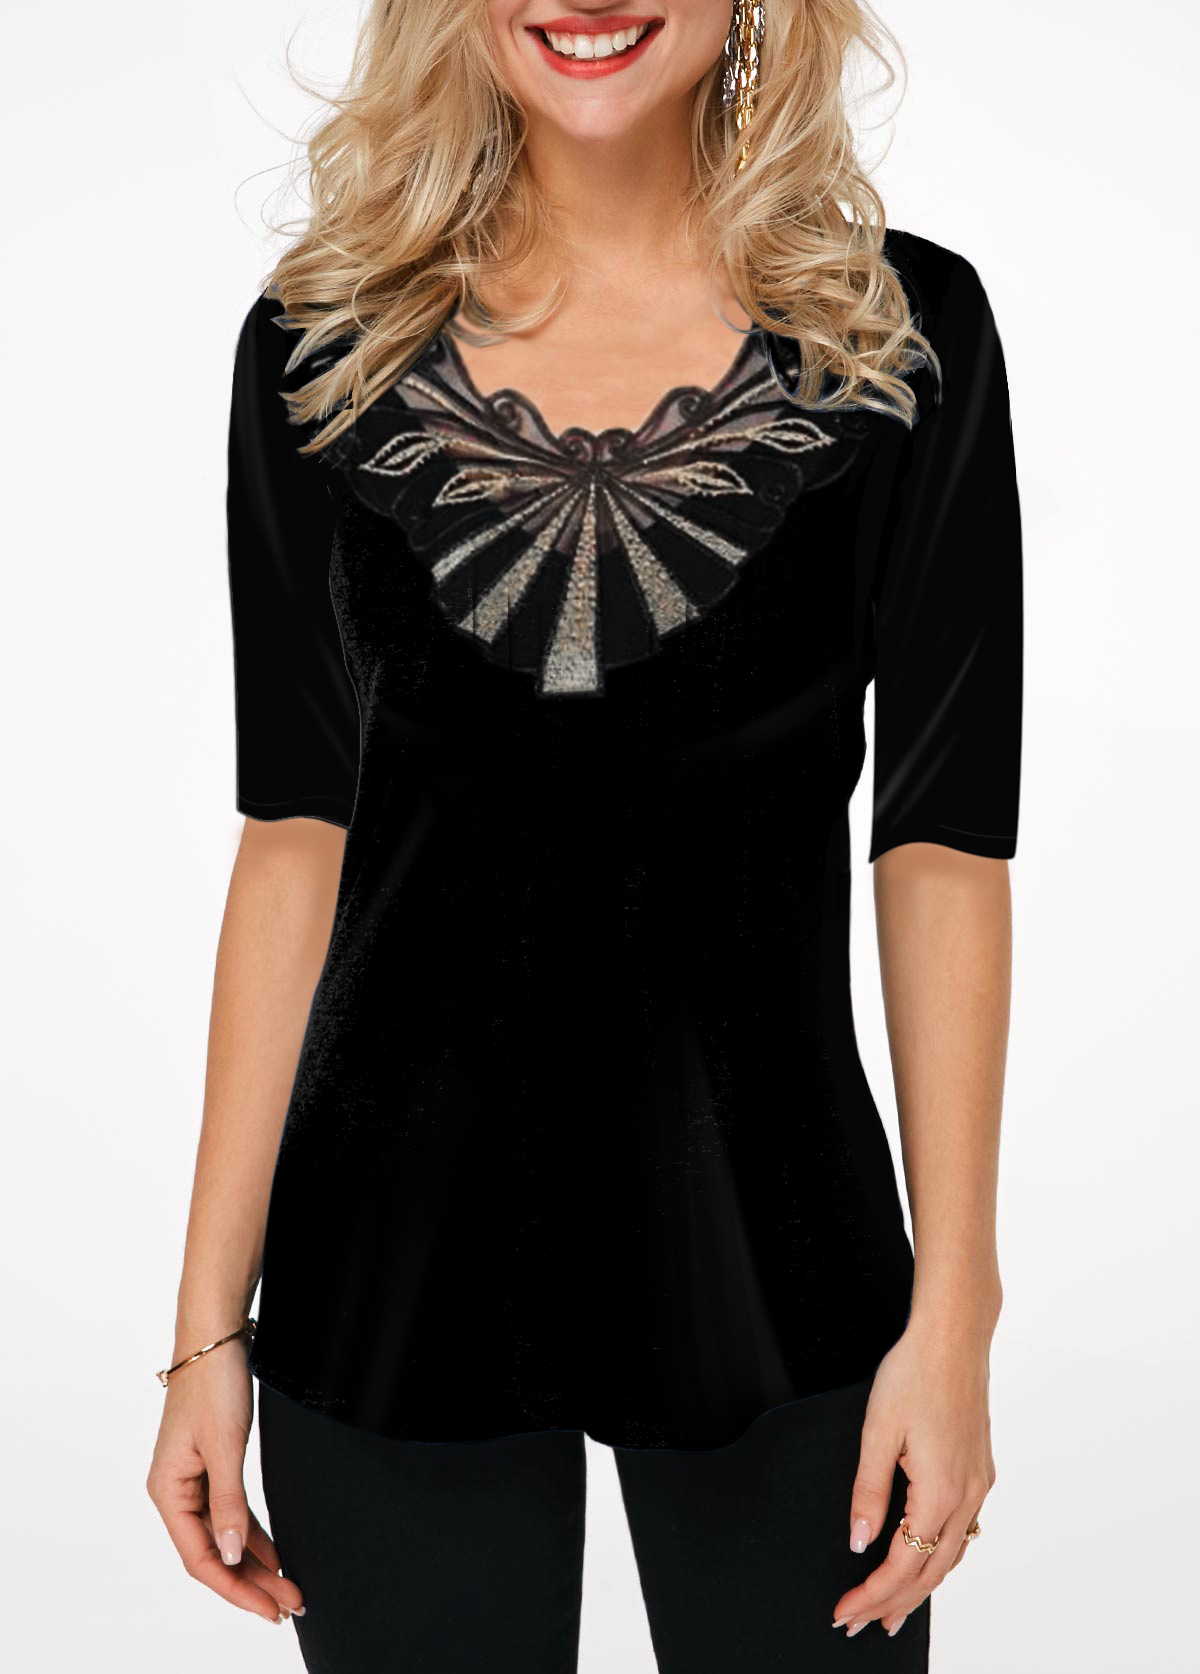 Lace Panel Half Sleeve Black T Shirt